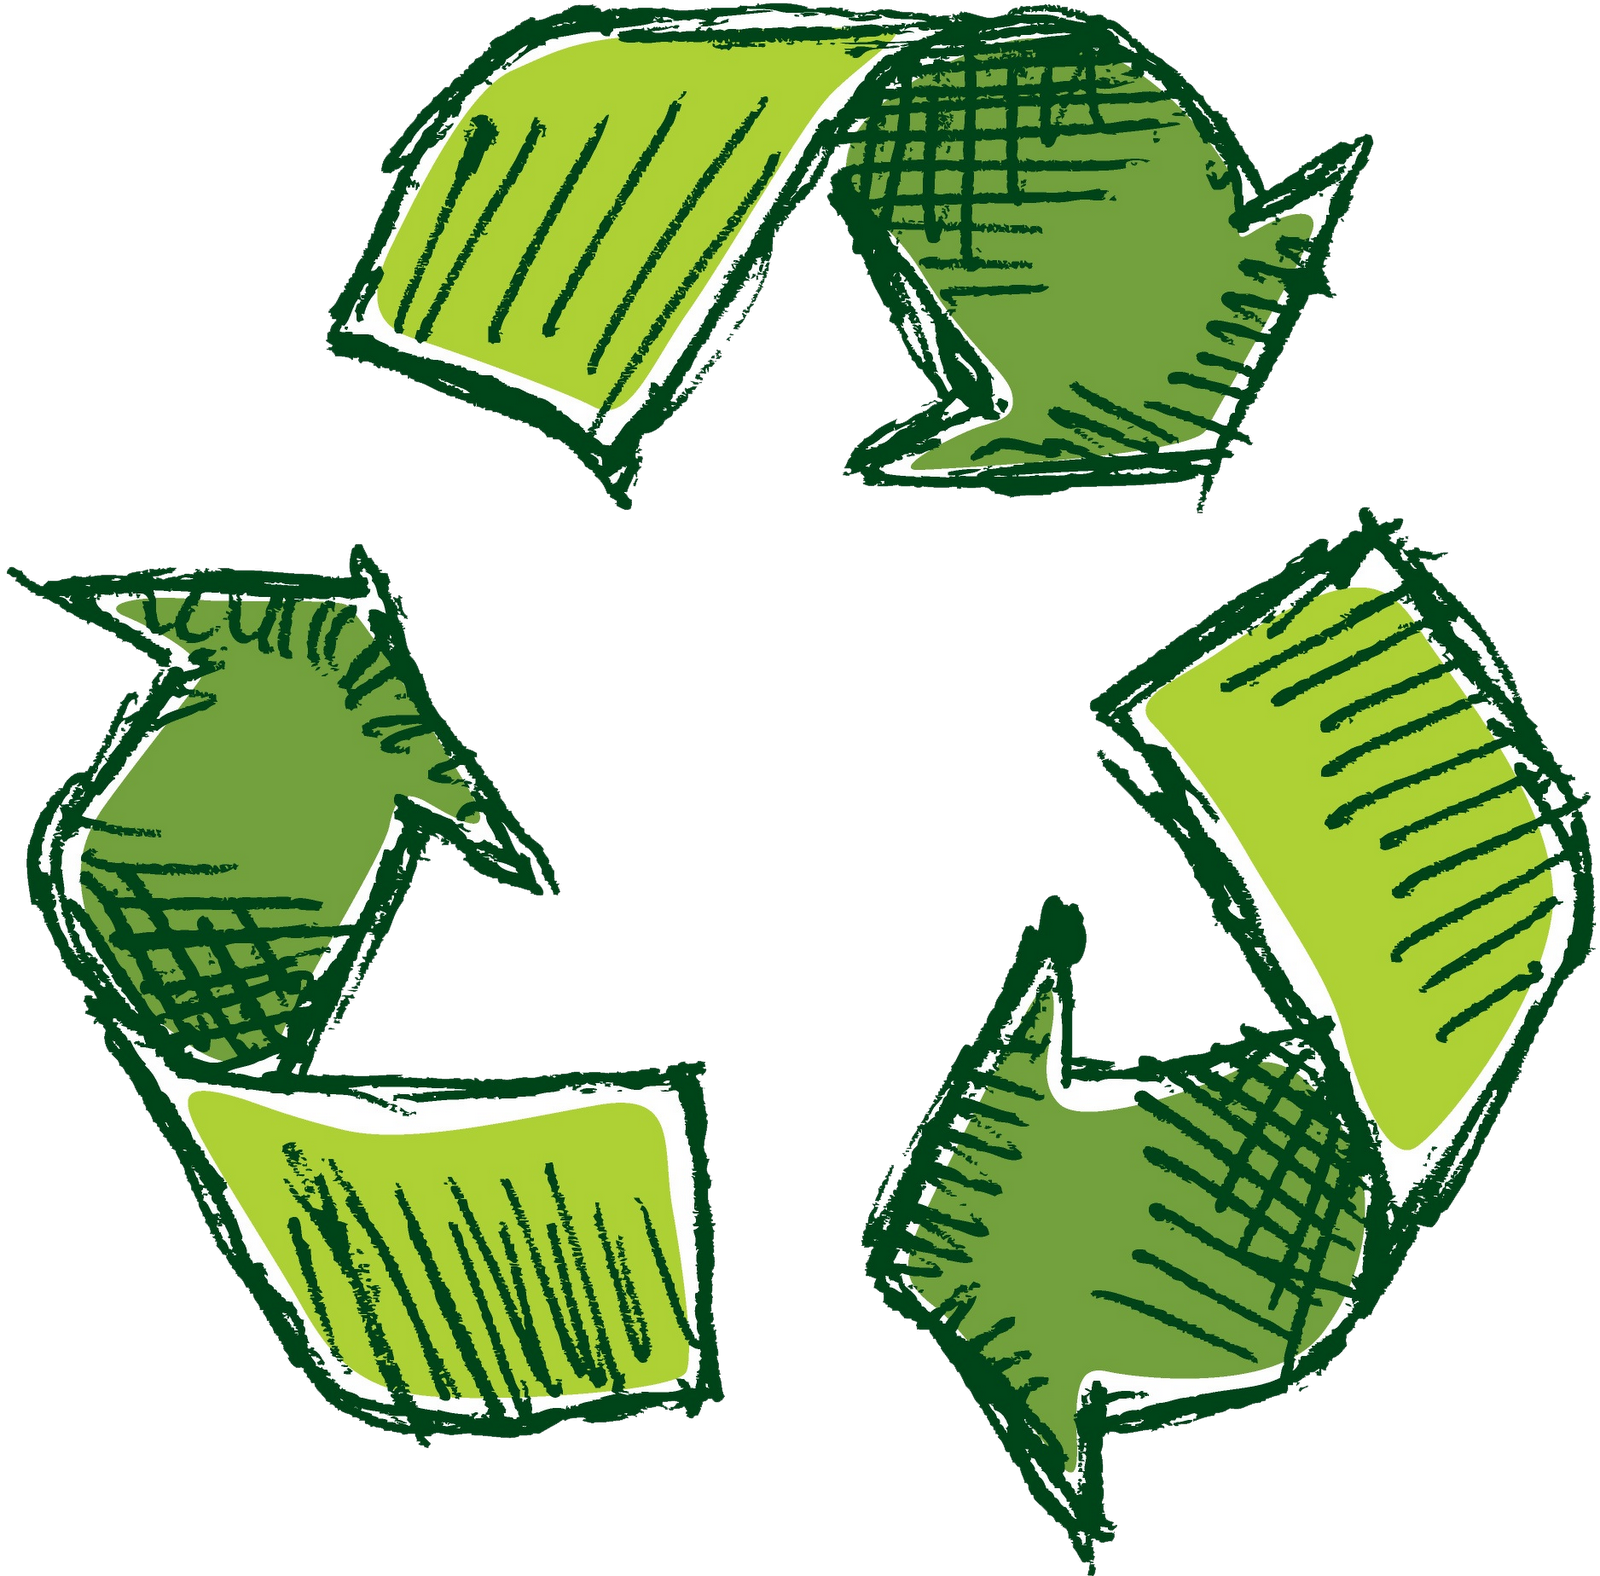 Landfill Recycle Symbol Recycling Download HQ PNG PNG Image